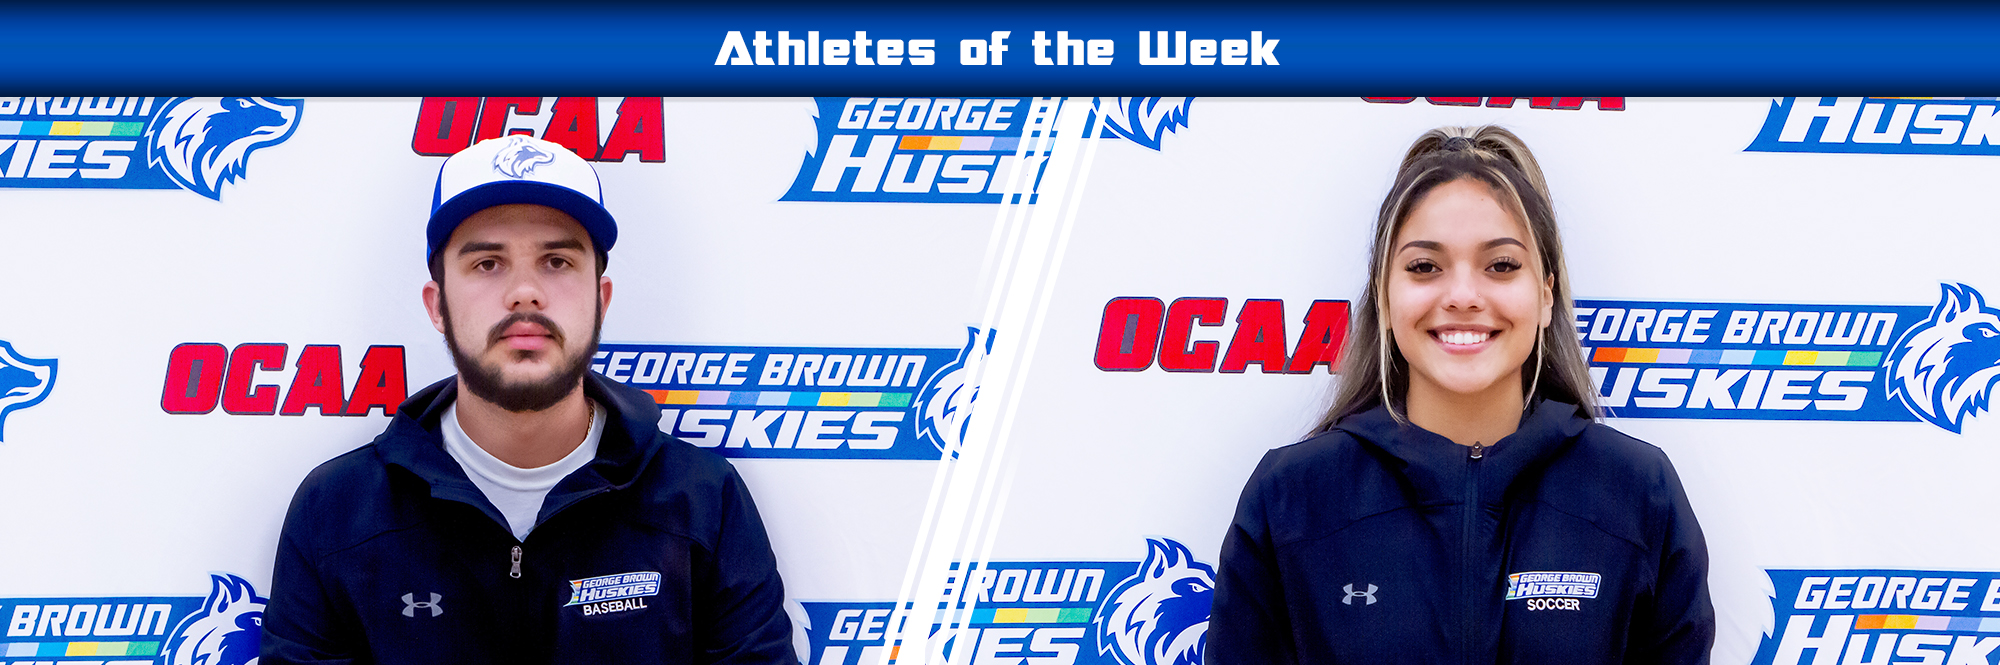 Athletes of the week David DeCassan Men's Baseball and Tatyana Lopez Women's Soccer